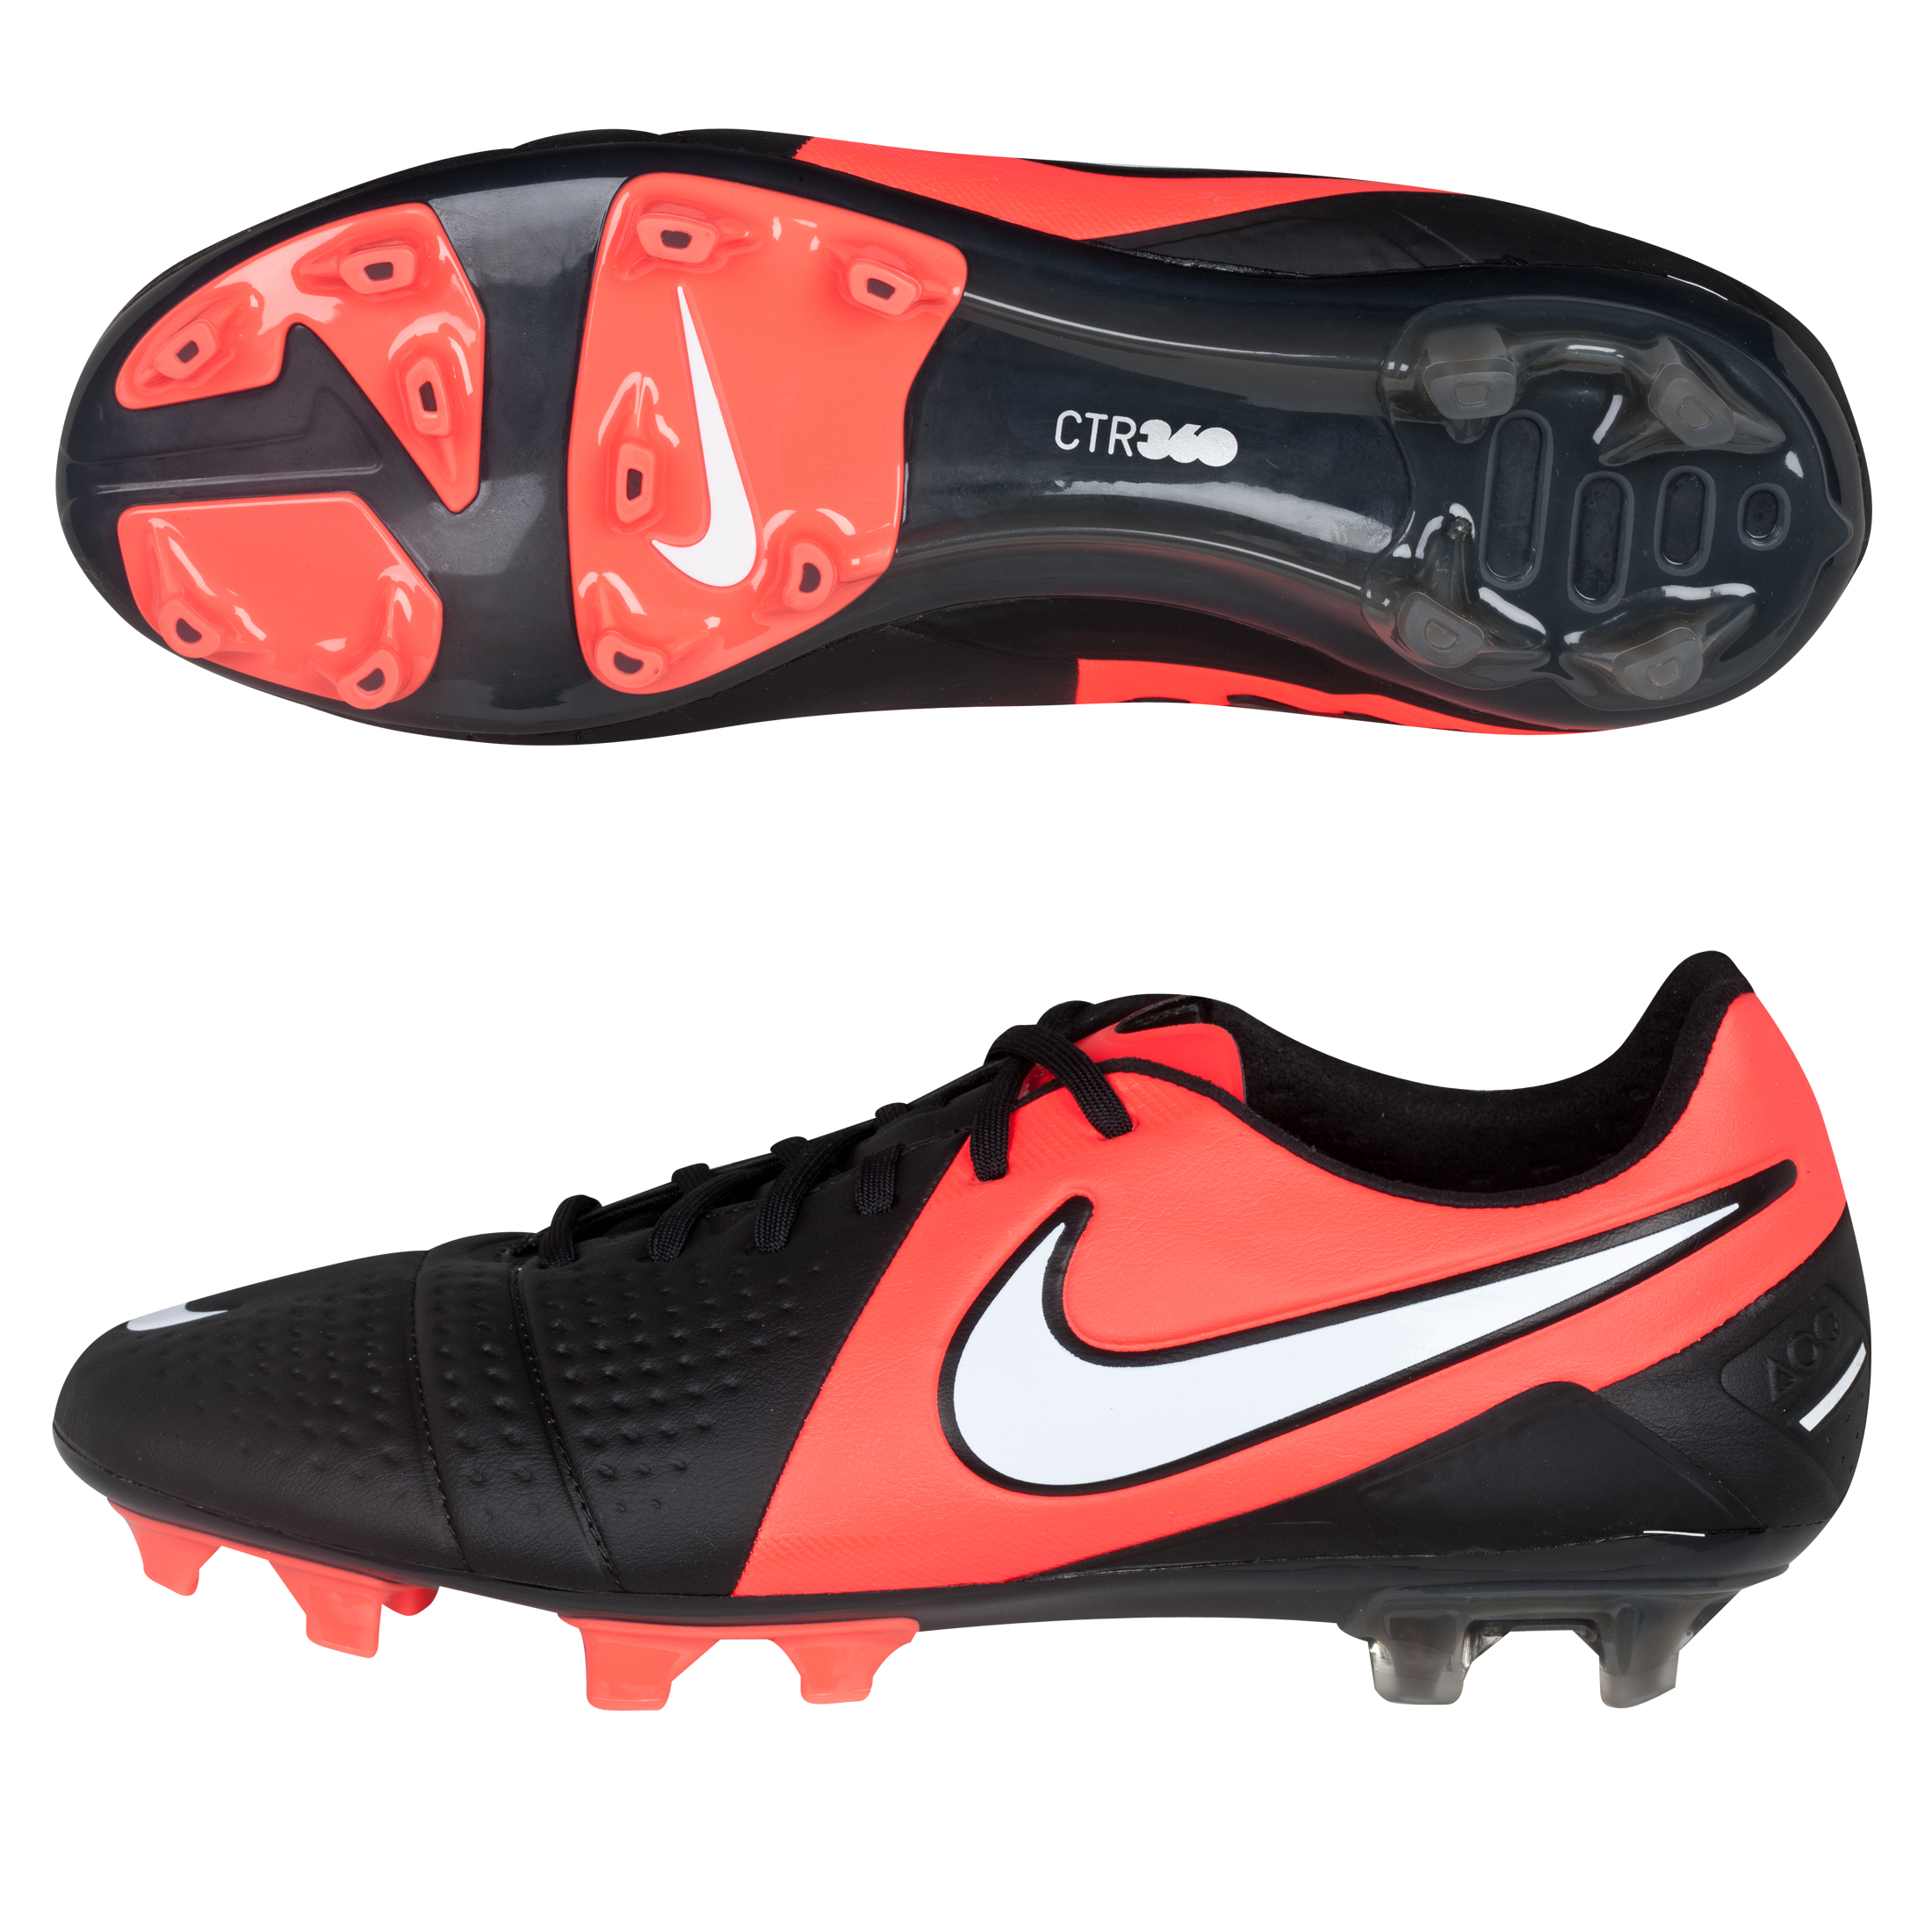 CTR360 Maestri III FG Black/White/Bright Crimson